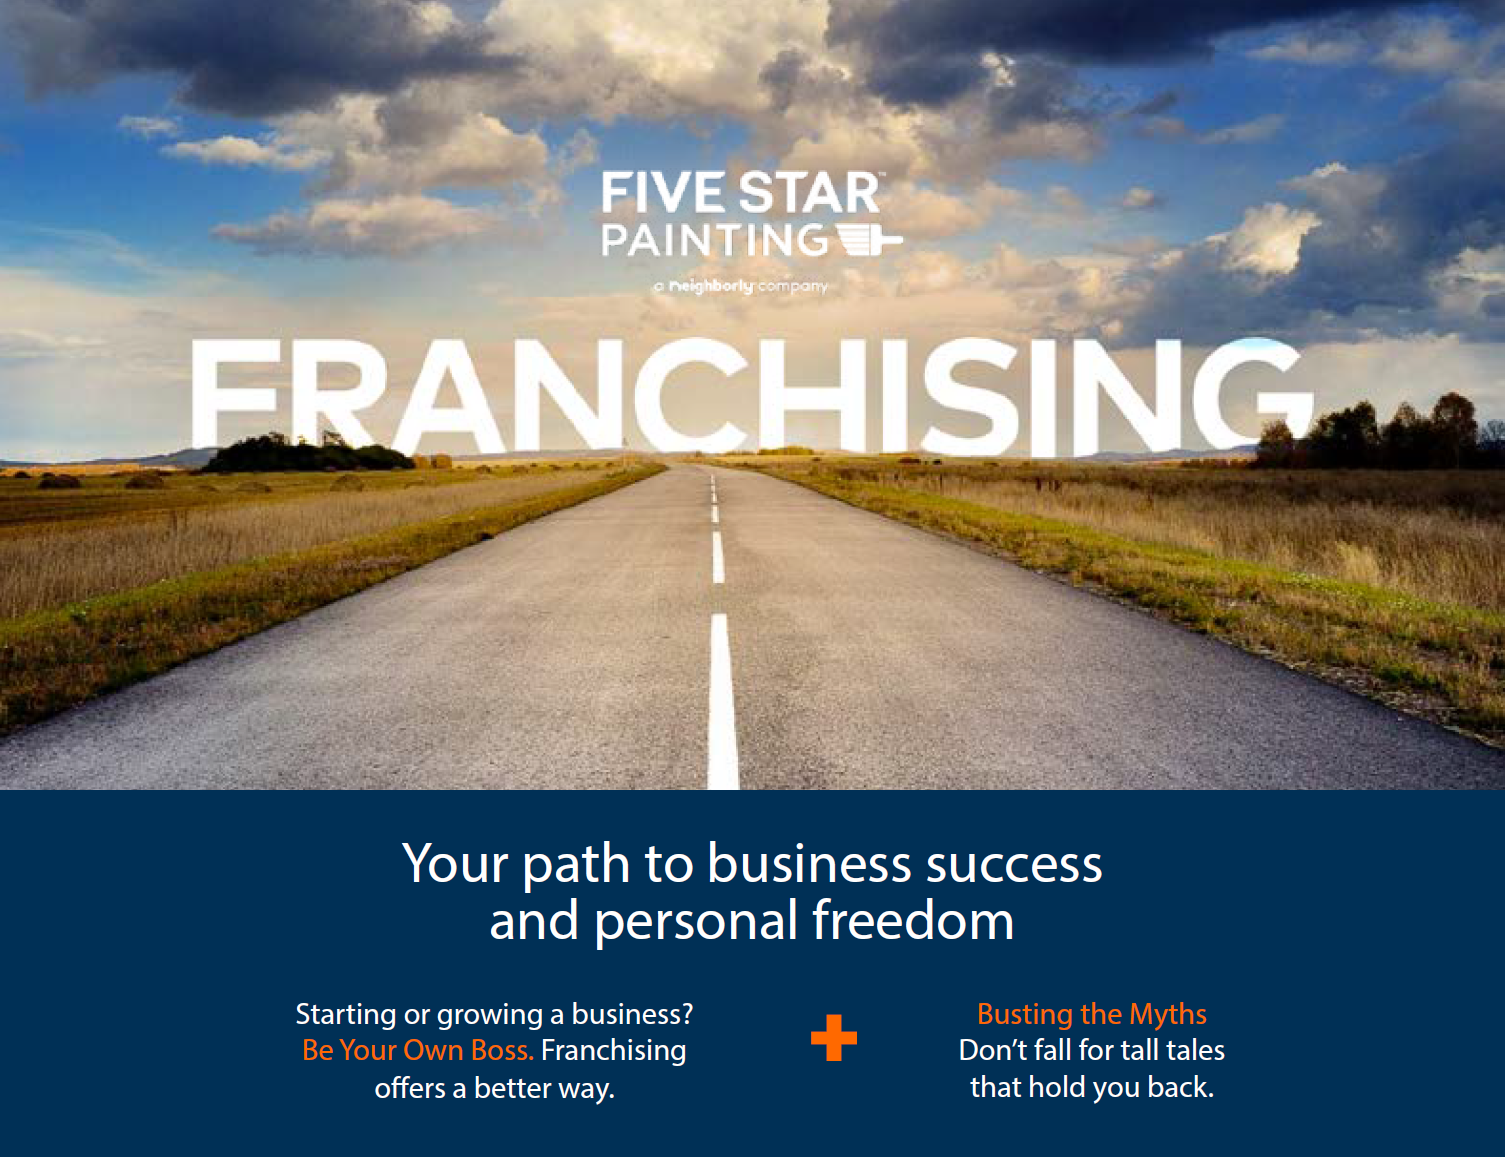 FS-FSP-franchising-a-path-to-your-future